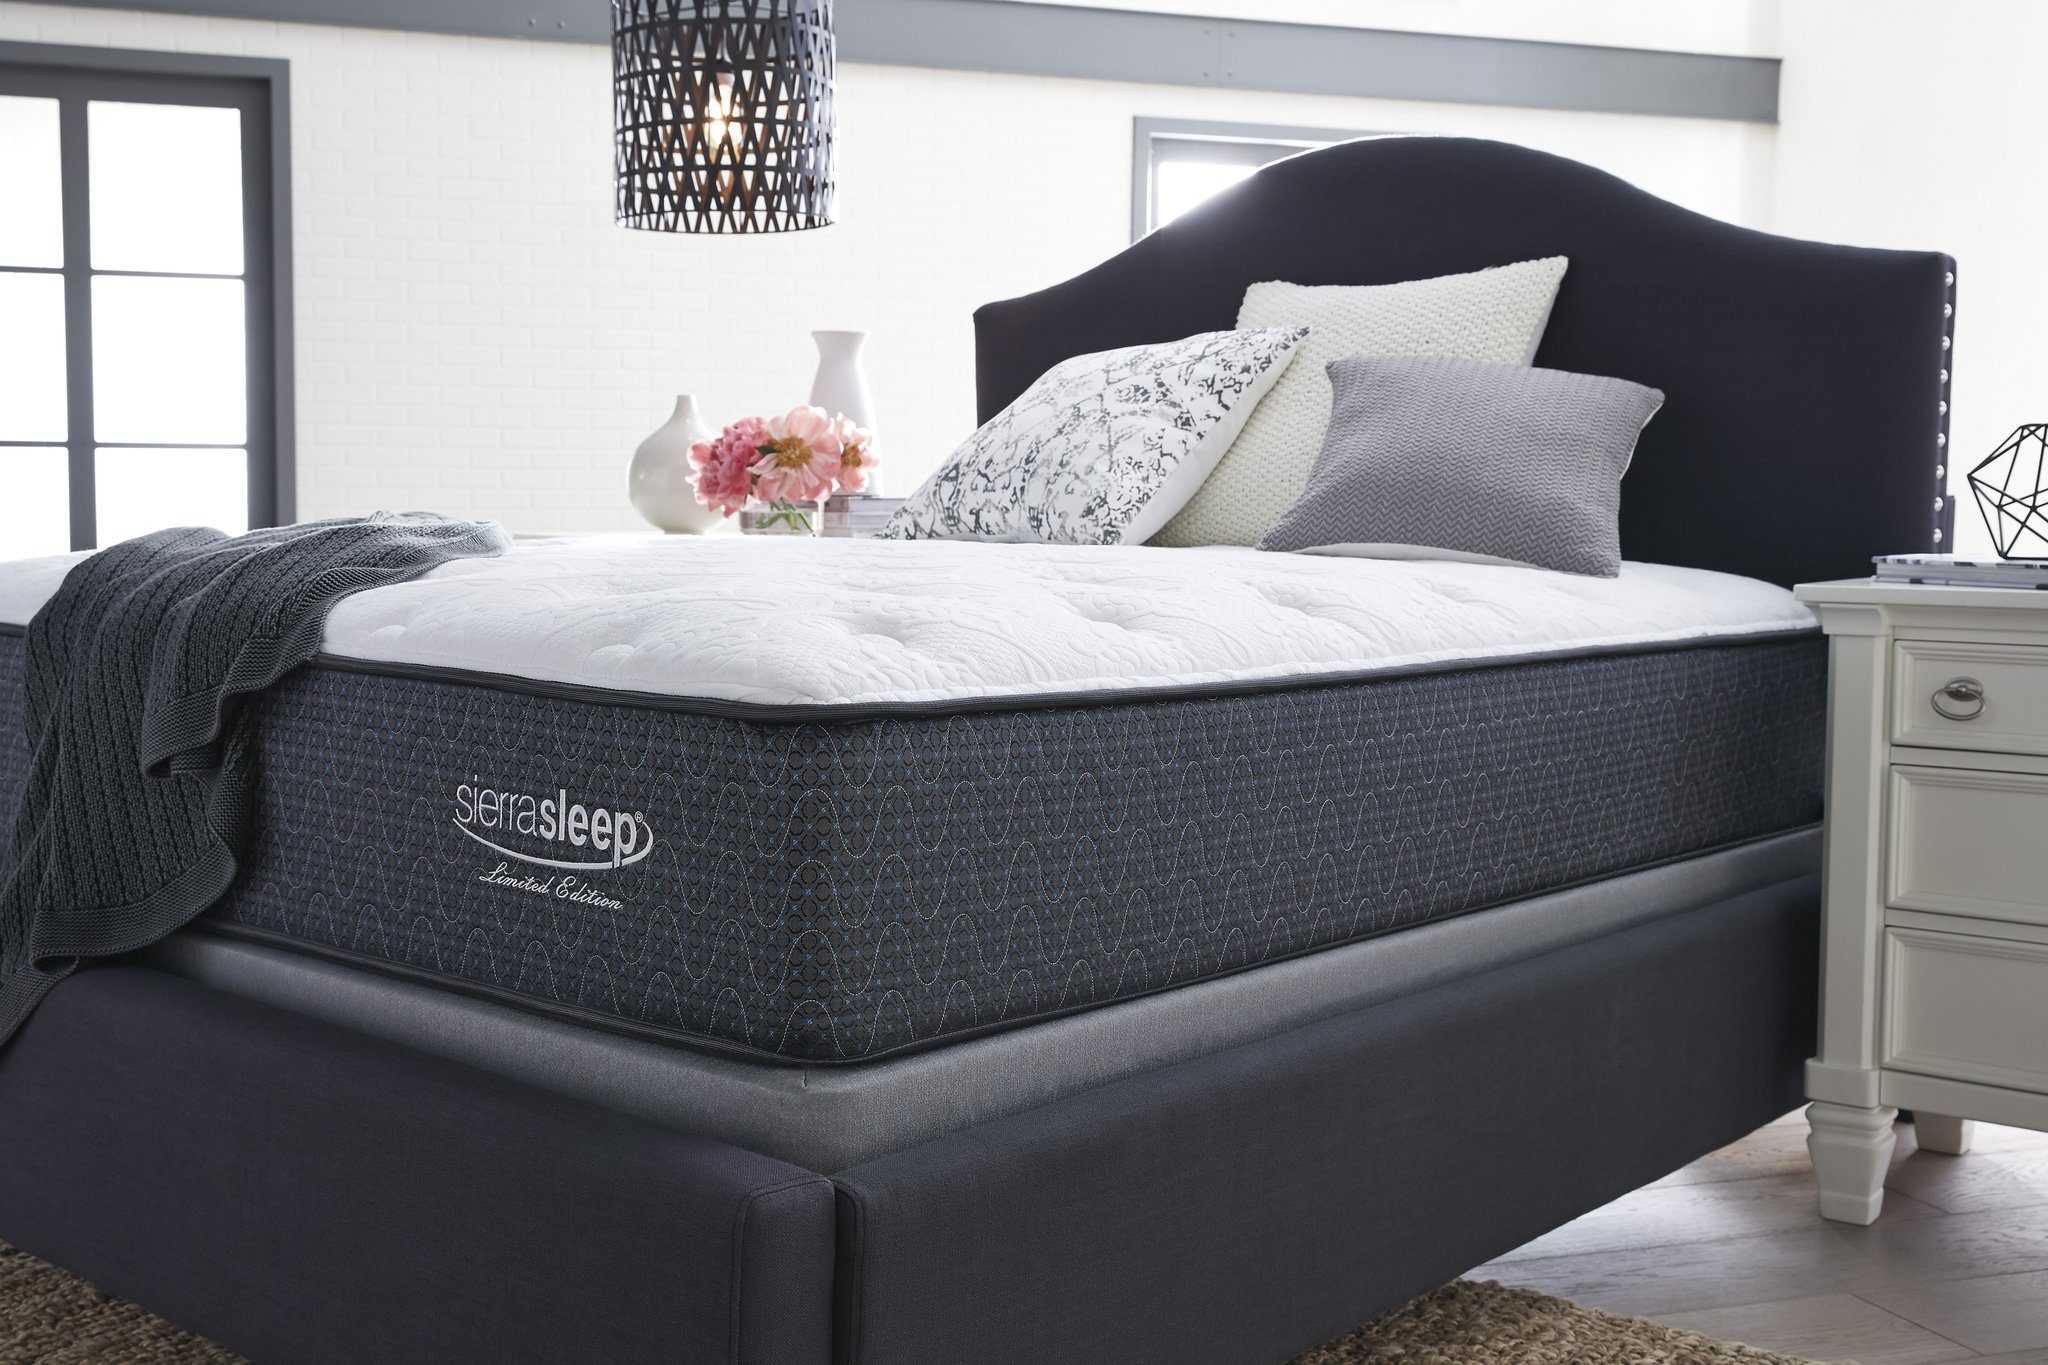 Ashley sierrasleep plush Limited edition mattress  Luxurious softness is the inevitable result of layers upon layers of high-density foam and gel support. System of 680 power packed wrapped coils offers ample structural support, while 4-way stretch knit cover provides a smooth yet durable surface for years of use.  -Ultra Loft Comfort Fiber -Blended Cotton Fiber -2 inches Luxury Support Quilt Foam -.5 inch Lumbar Gel Memory Foam -1 inch Conforma Soft Support Foam -3 inches High Density Foam Encasement -720 Encased Coils   10 Year Limited Warranty   sizes available  QUEEN, KING